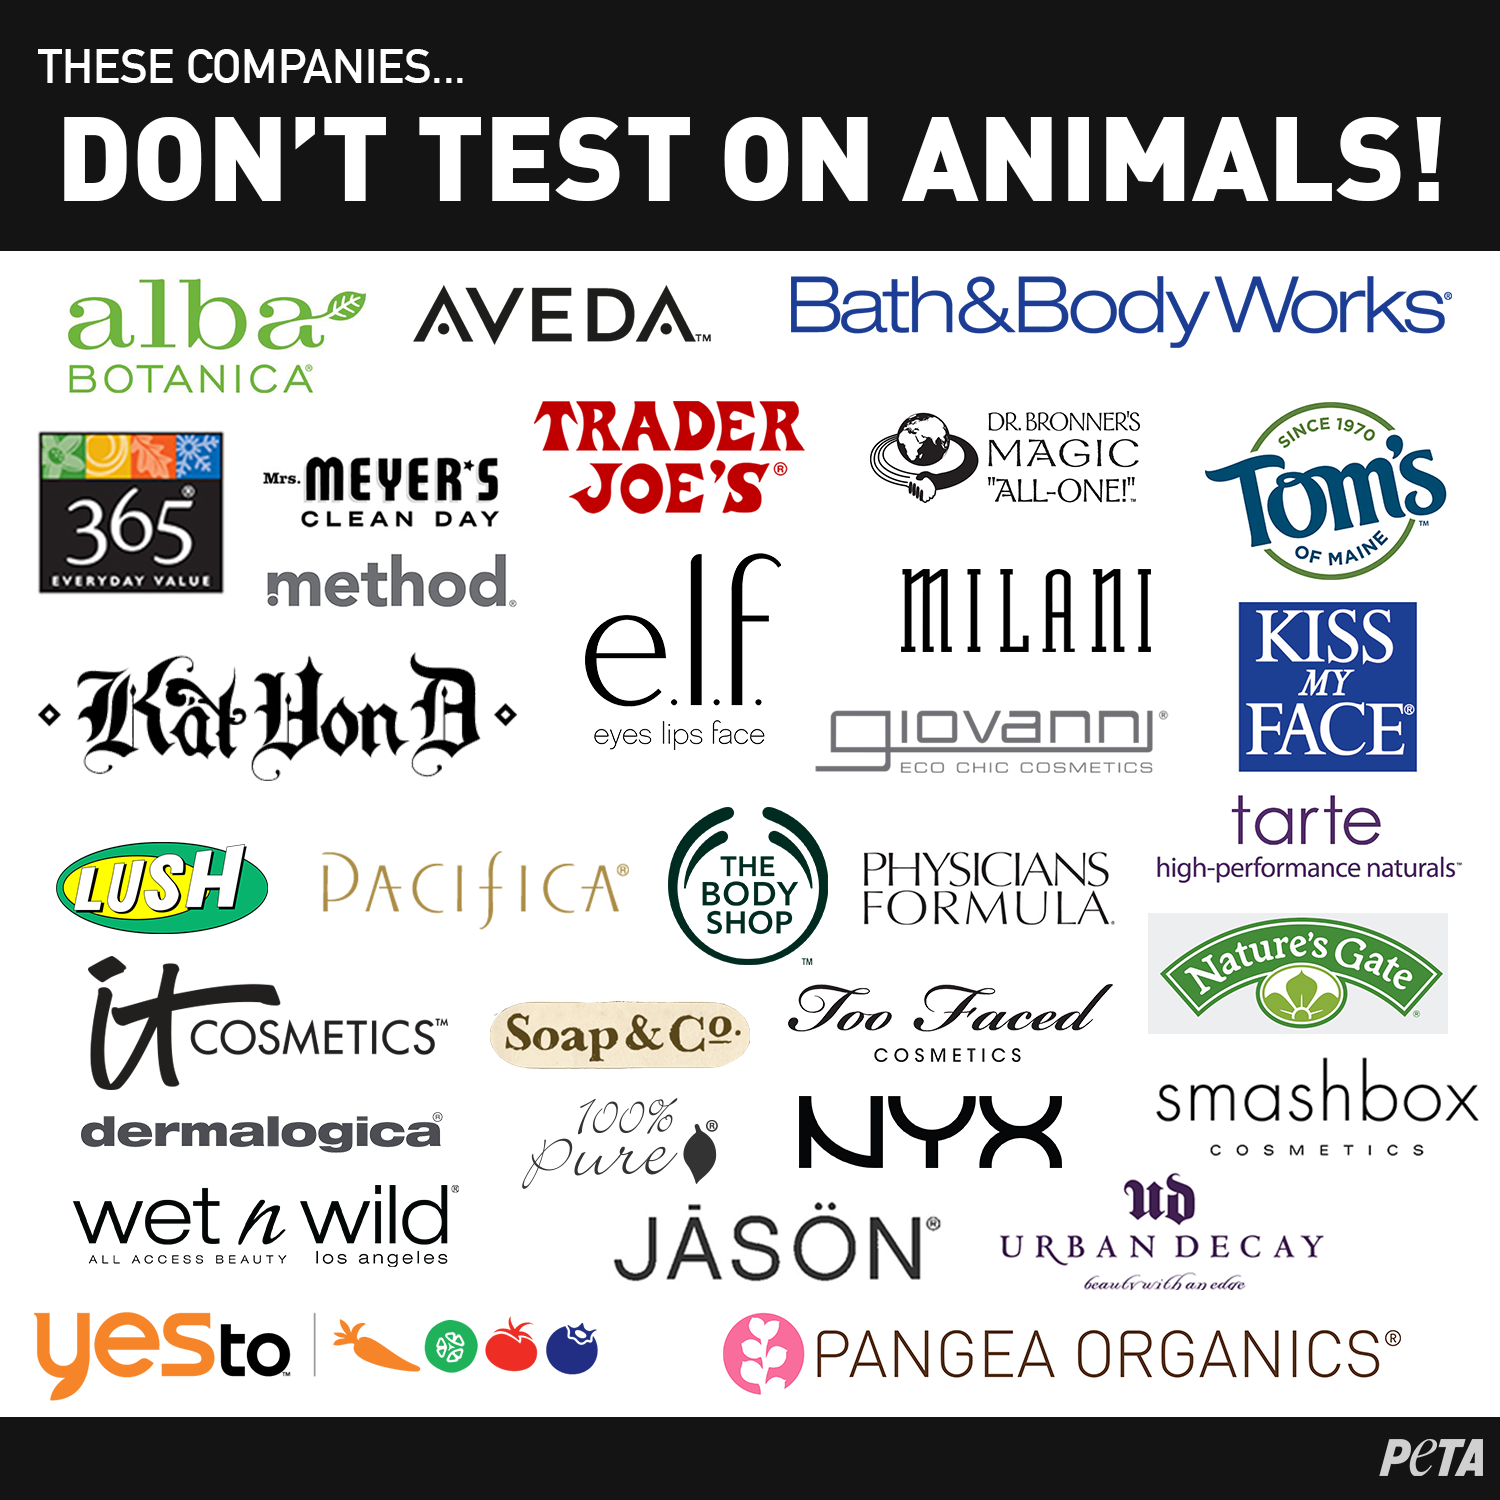 By purchasing products solely from cruelty-free companies, you'll be helping to end cruel tests on animals, while sending a powerful message to the ...